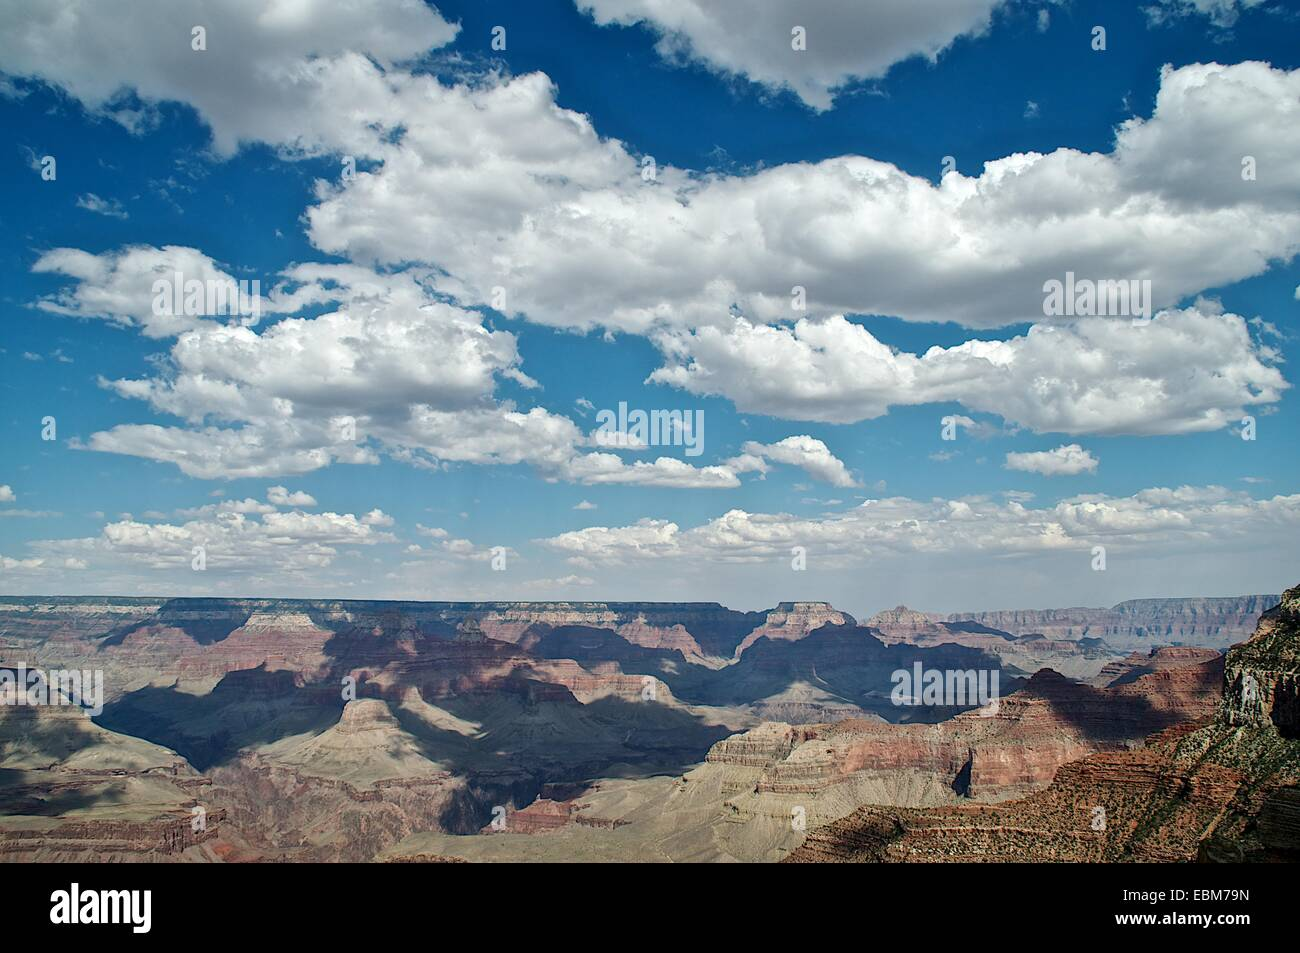 Fluffy clouds and blue sky cast shadows over the Grand Canyon, USA - Stock Image